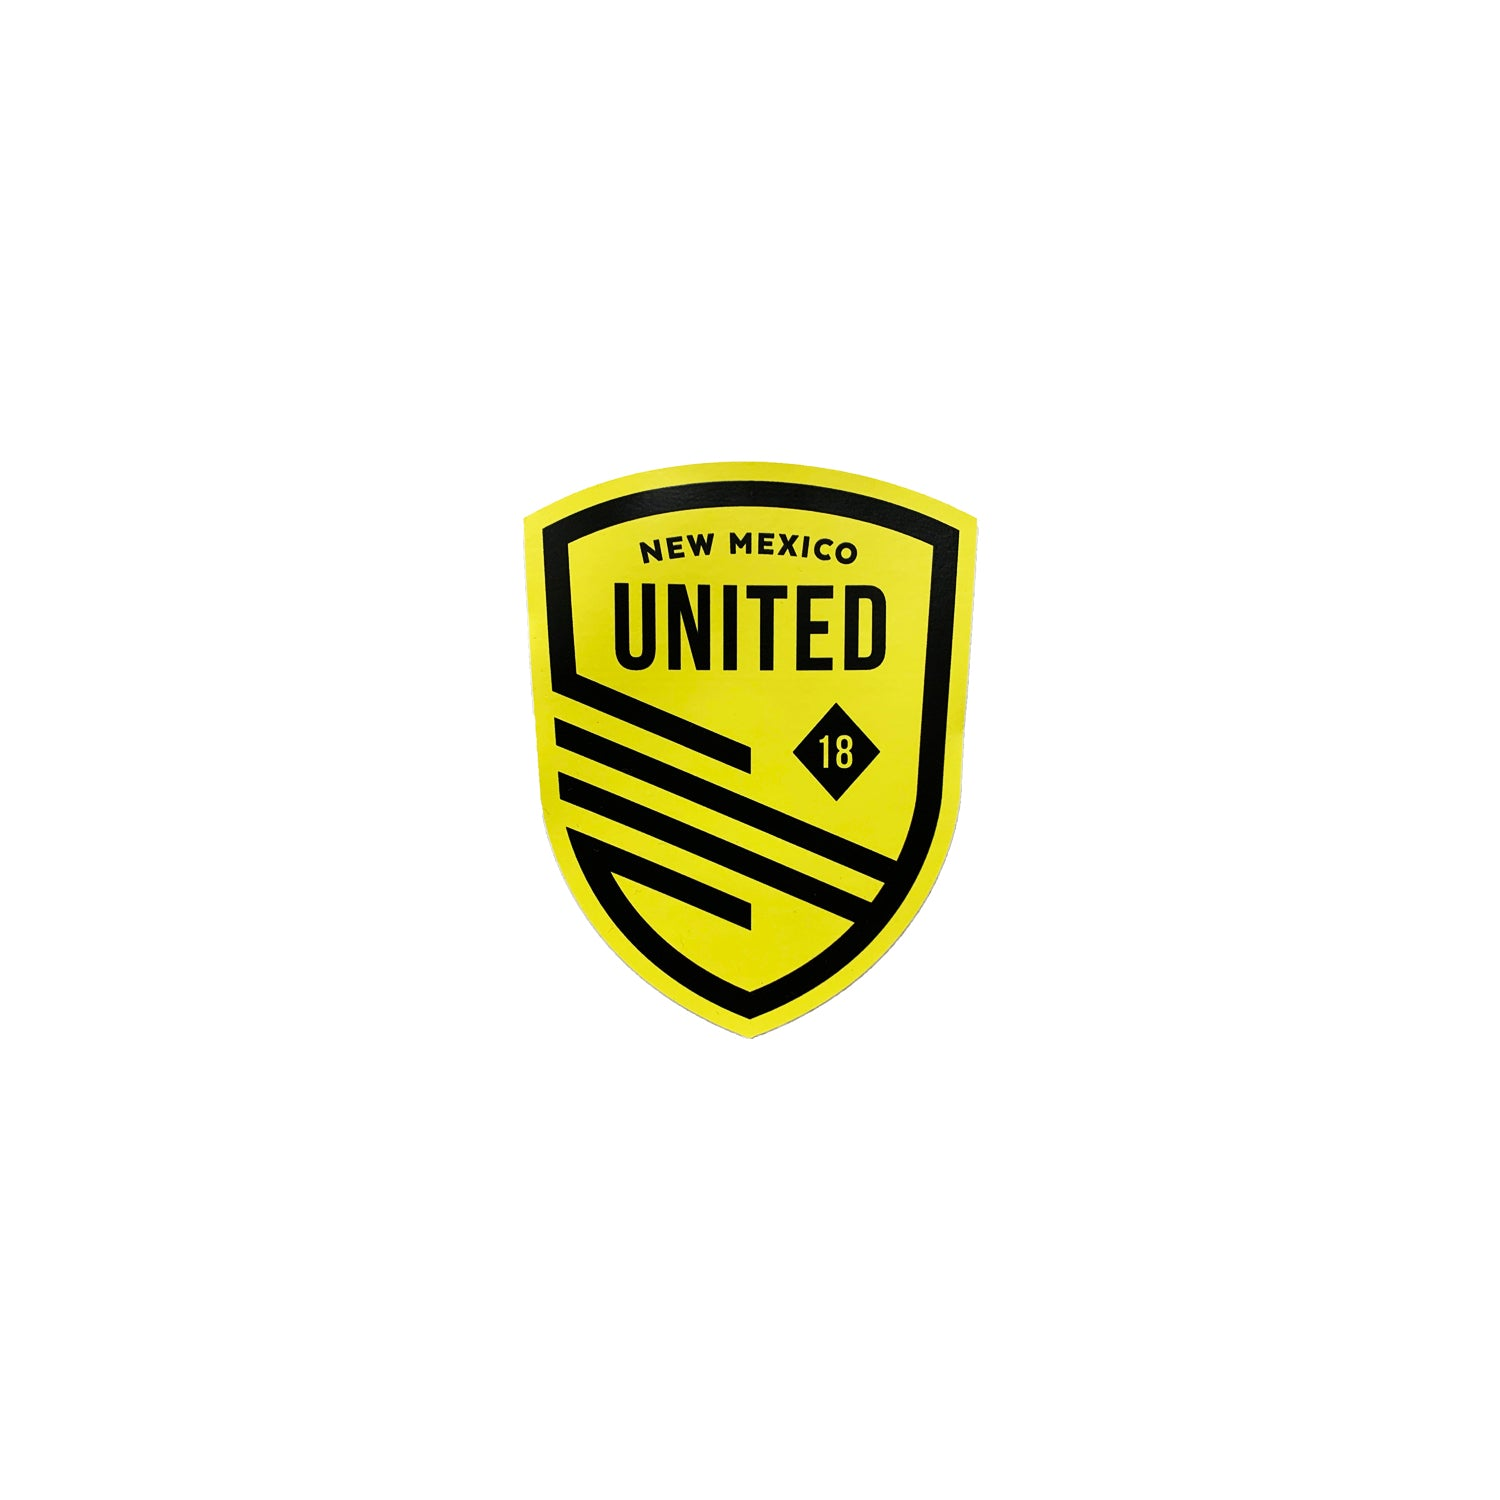 New Mexico United Small Shield Decal